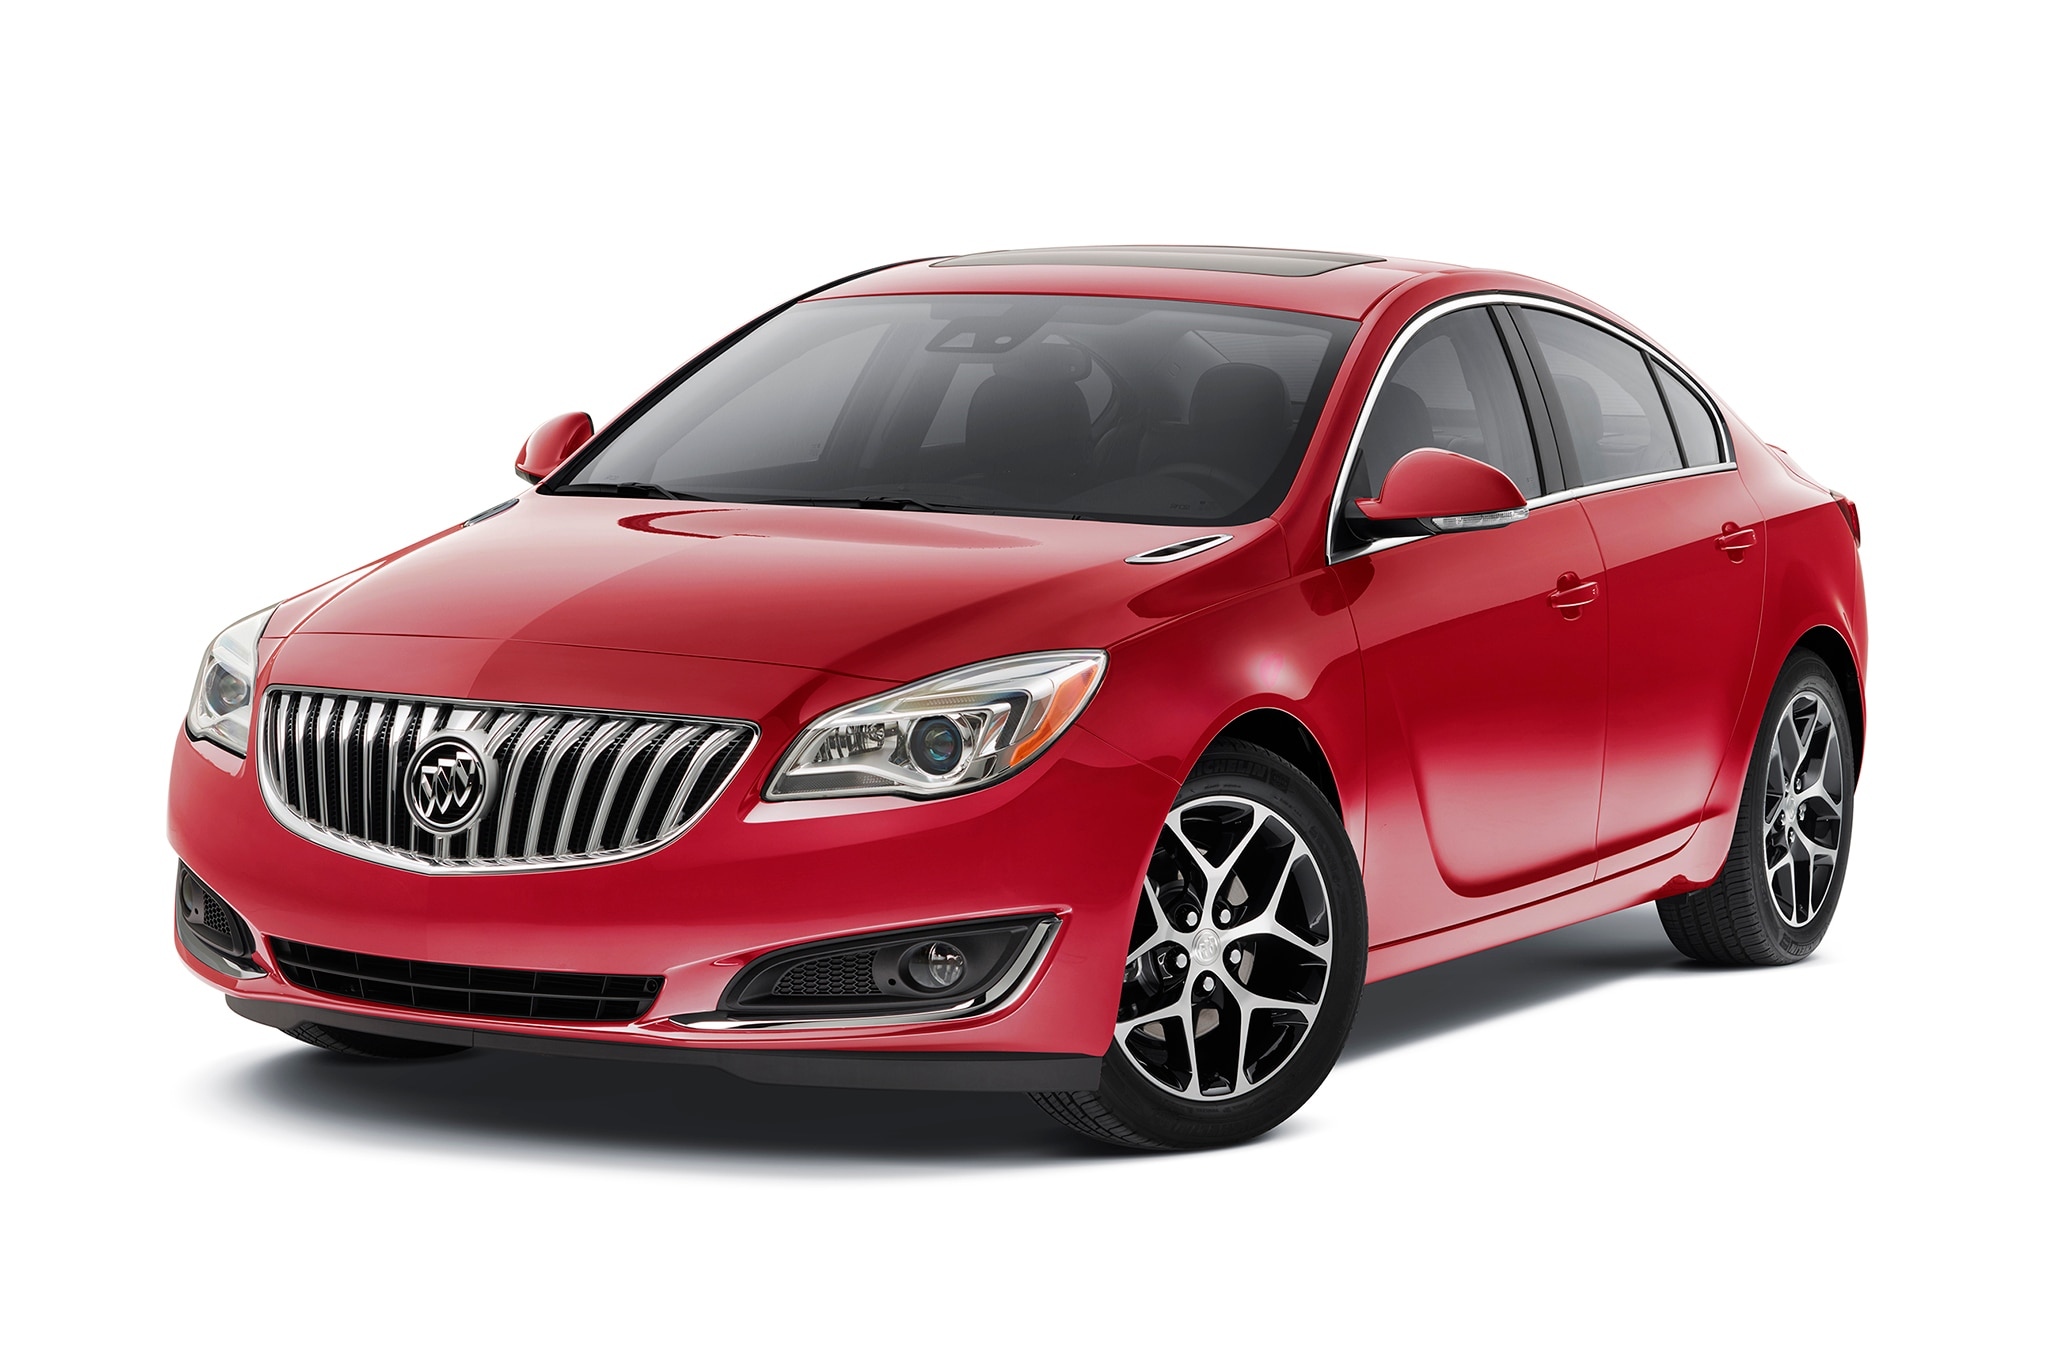 2016 buick regal prices cut by up to 3 320. Black Bedroom Furniture Sets. Home Design Ideas